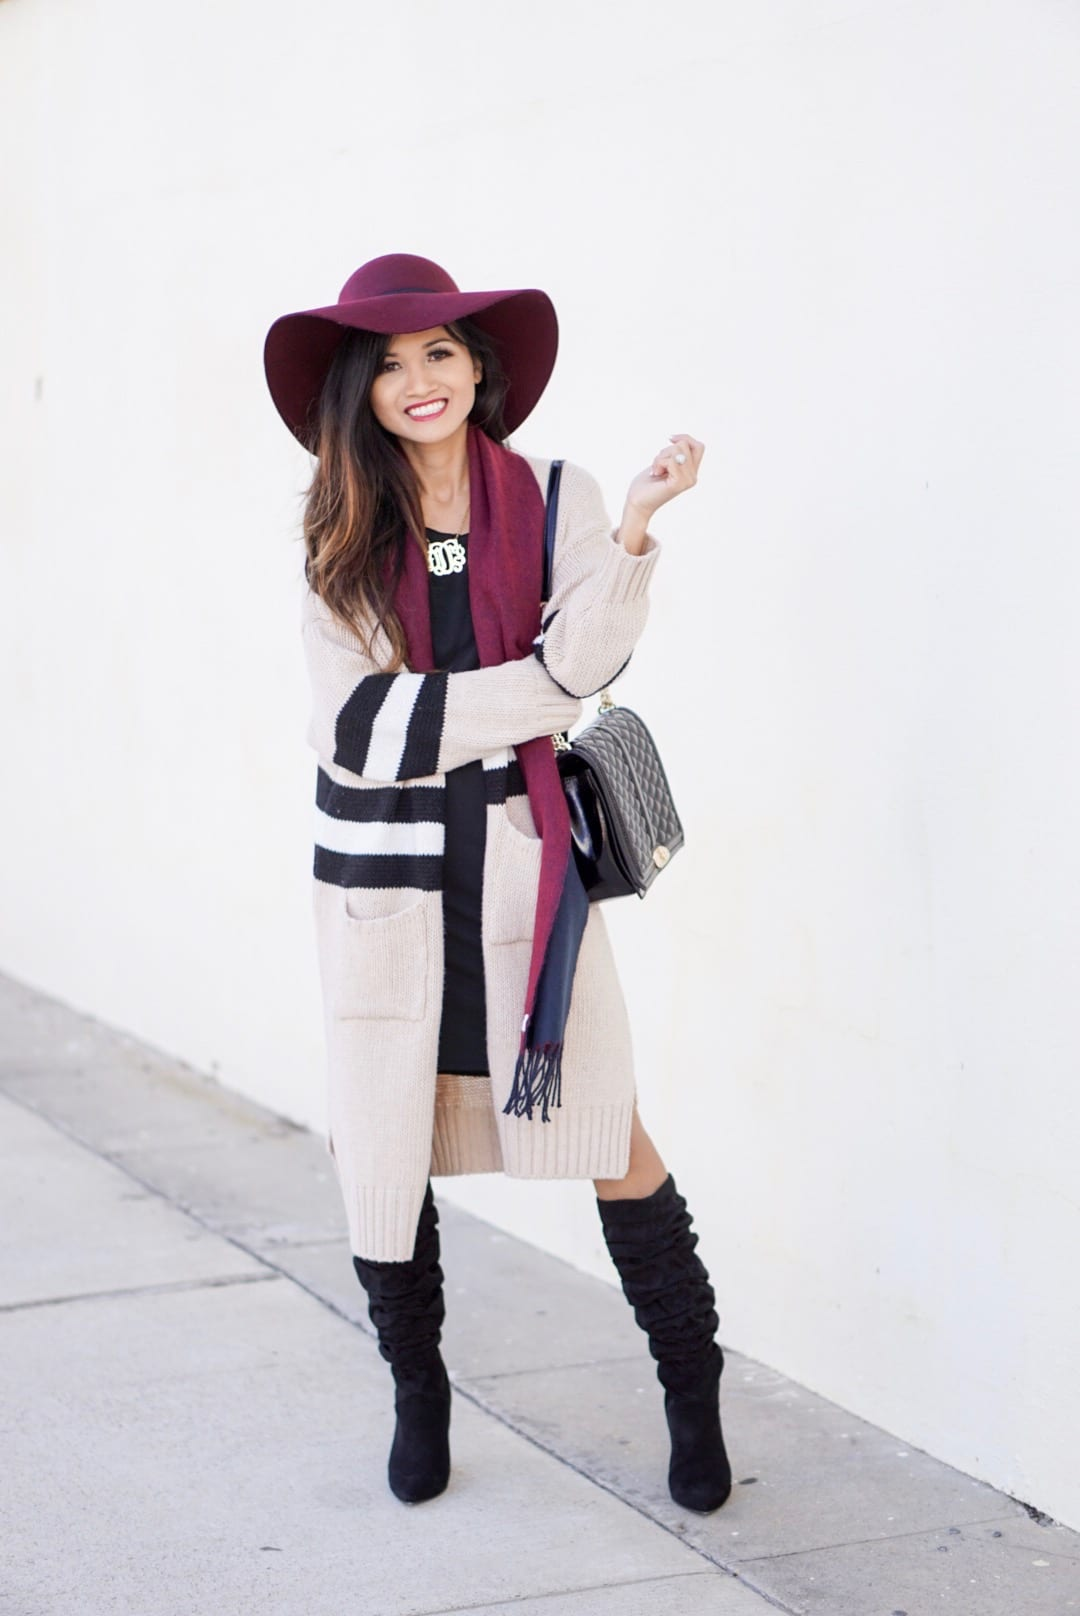 november favorites, fall accessories, Burgundy hat, floppy hat, fall accessories, beauty favorites, fashion favorites, slouchy boot, black boots, striped cardigan, goodnight macaroon, Rebecca minkoff love cross body, monogrammed necklace , black dress, fall dress, fall outfit, fall favorites